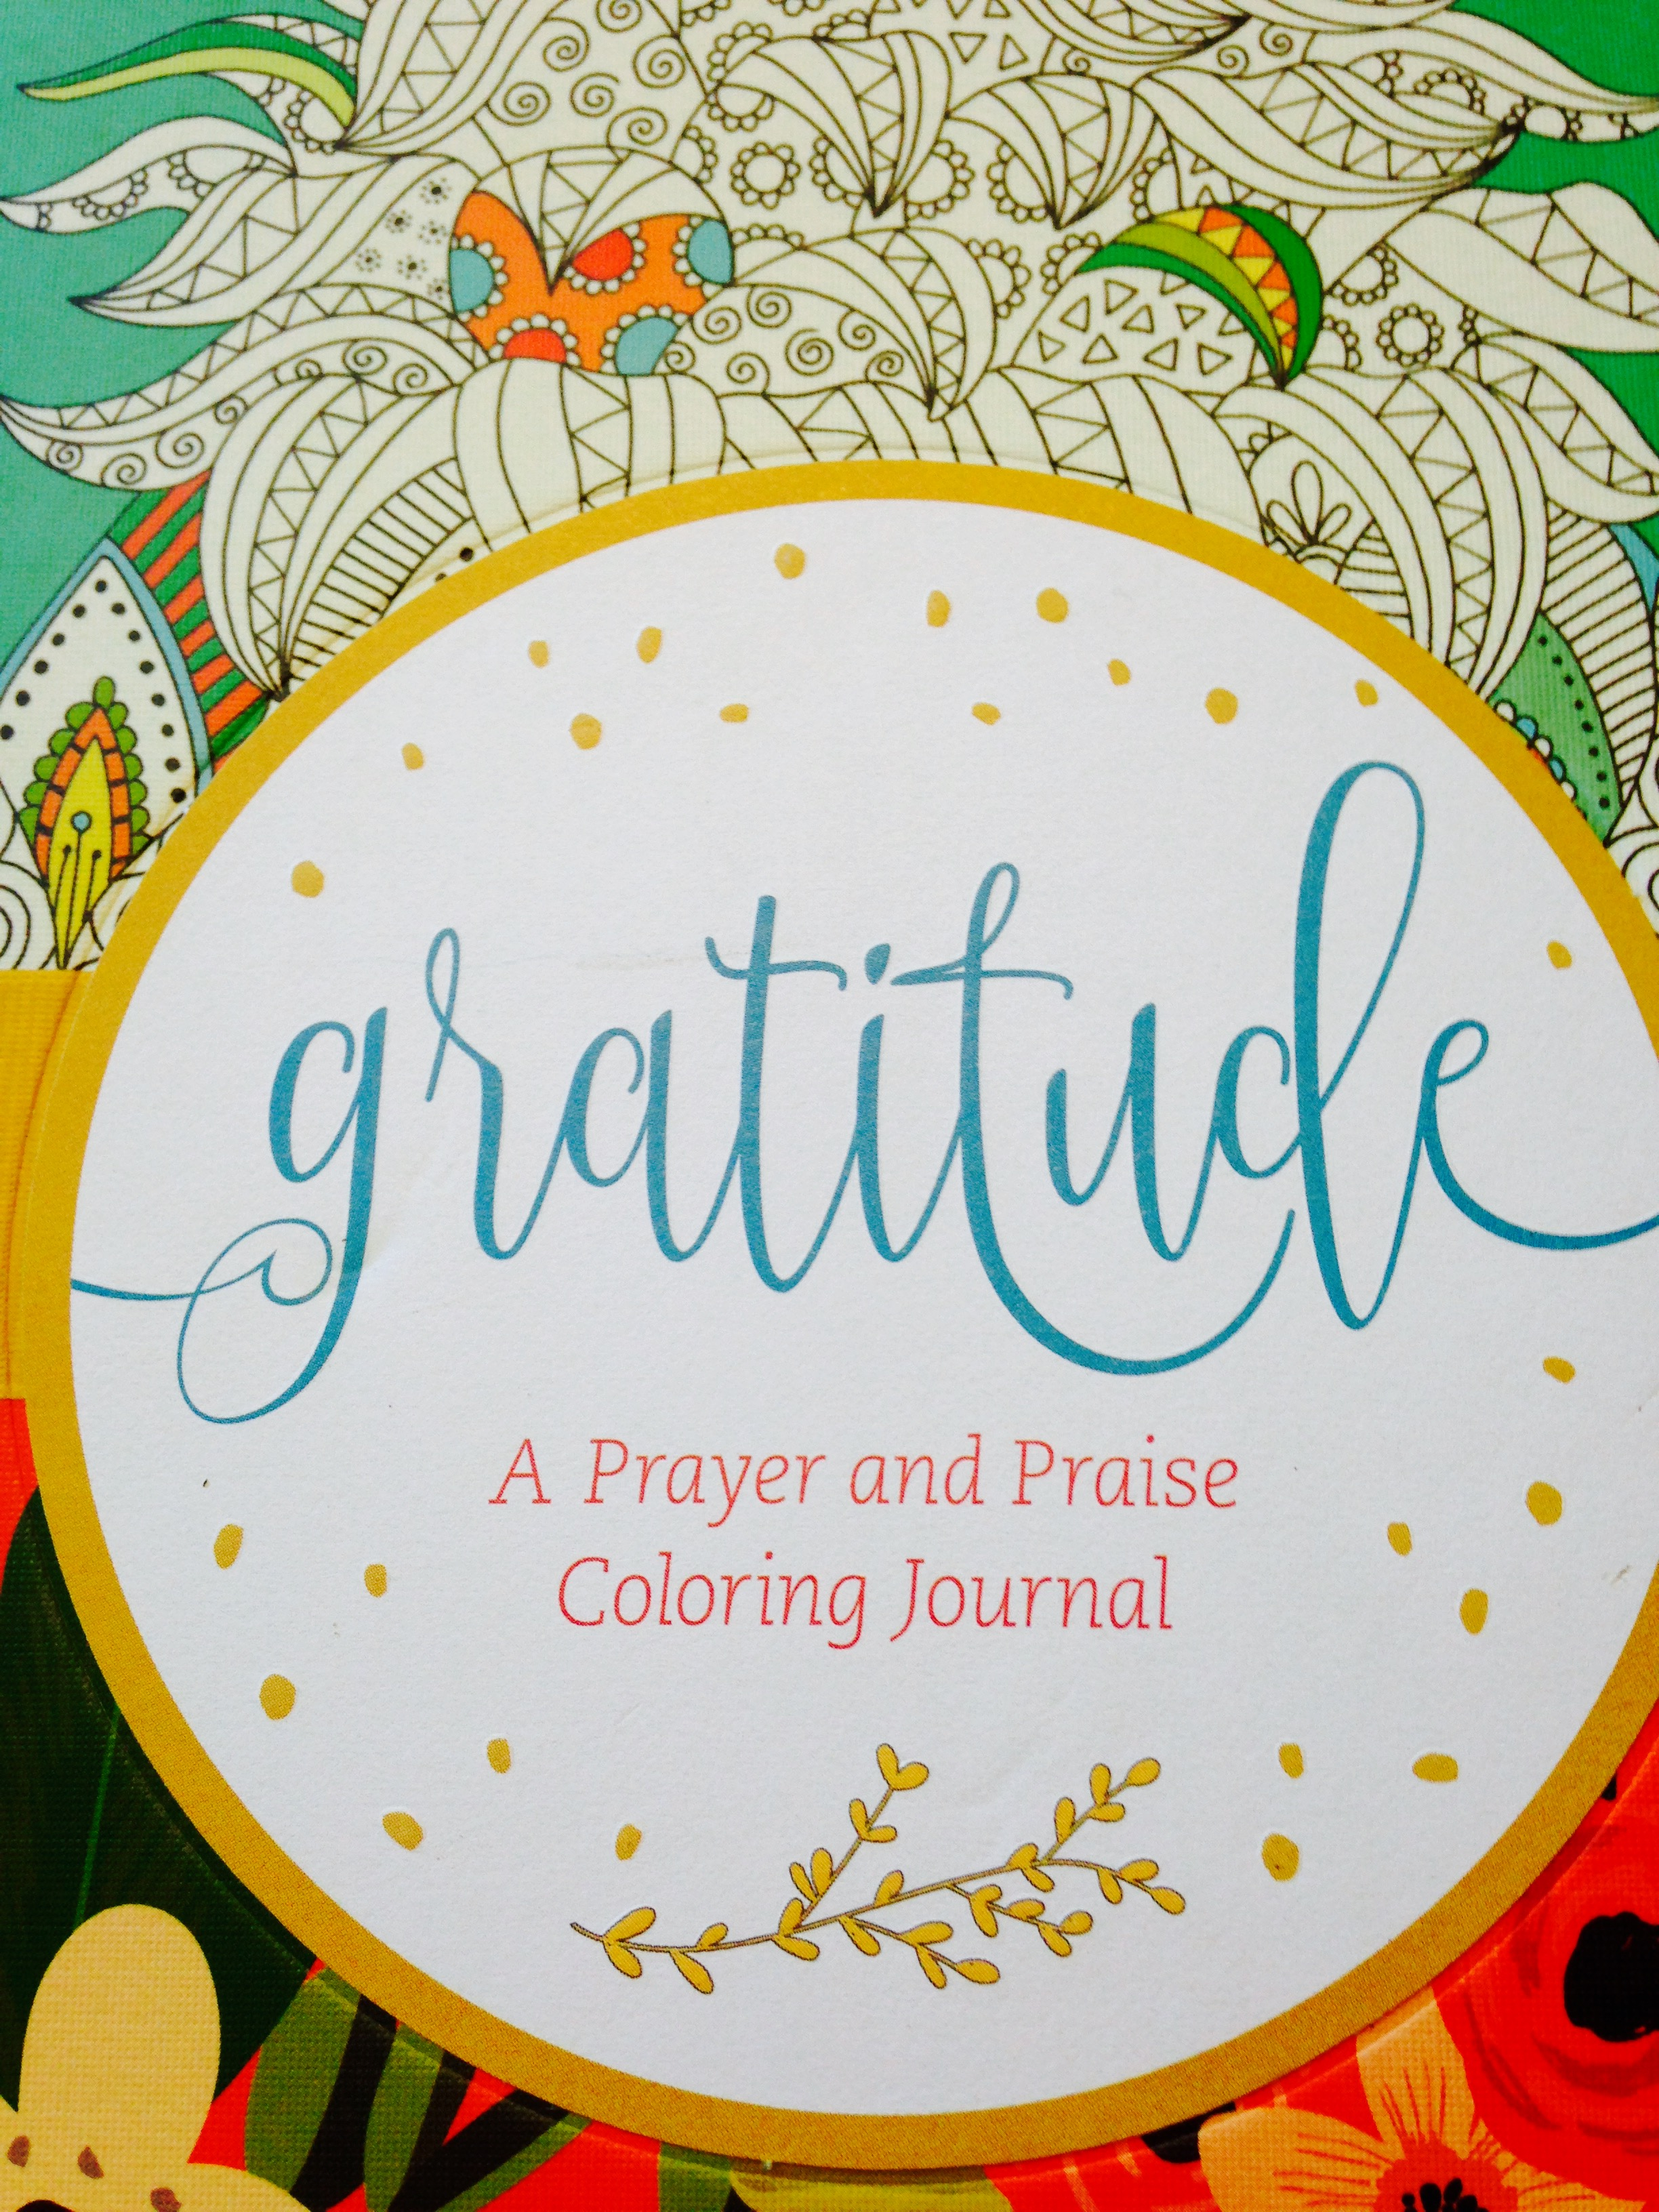 Gratitude A Prayer And Praise Coloring Journal Adding